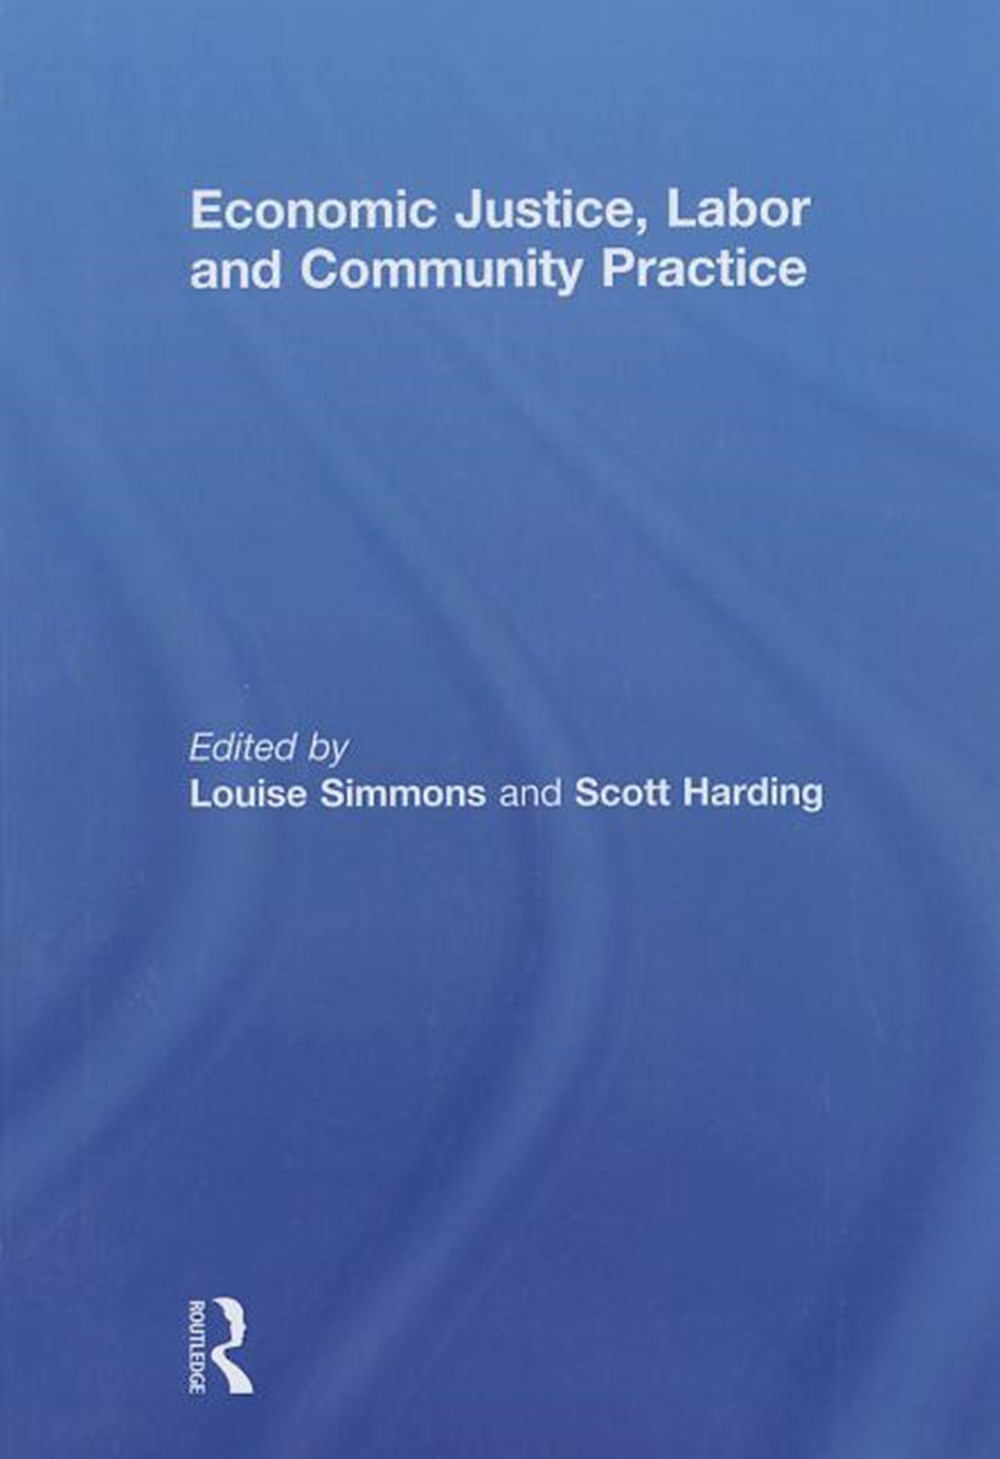 Economic Justice, Labor and Community Practice